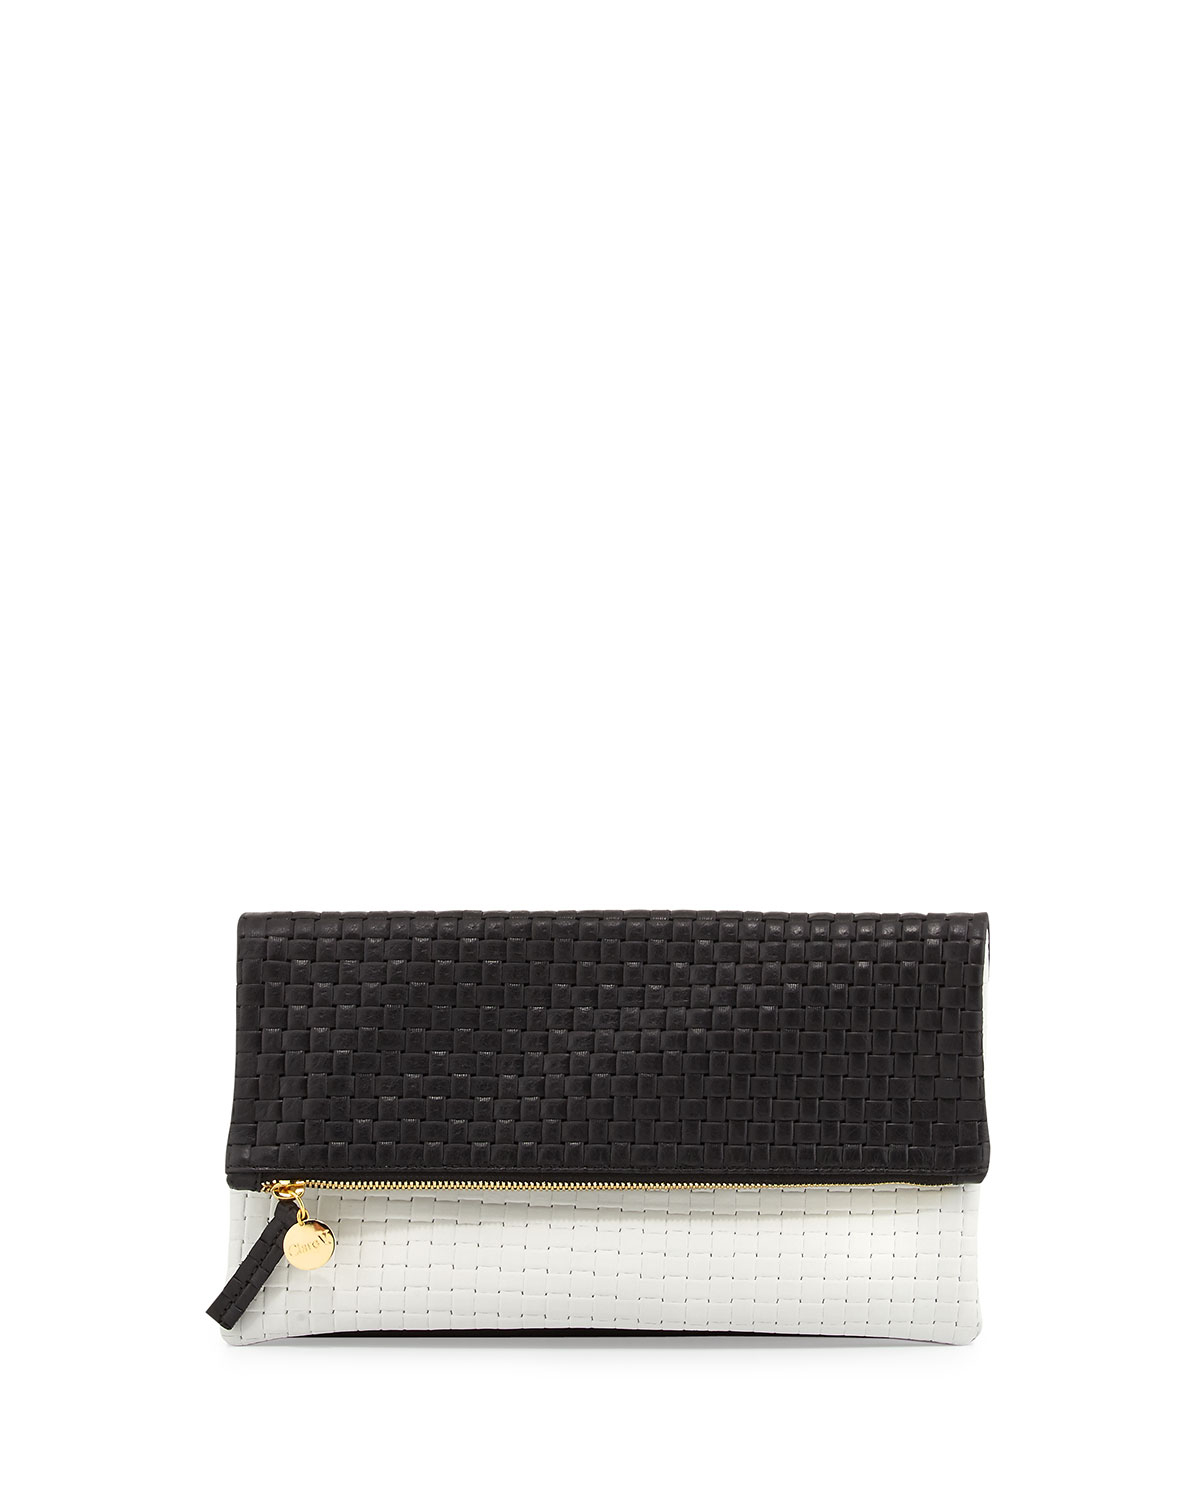 fendi bags outlet online ibyl  fendi leather fold-over clutch ##randkeyword##